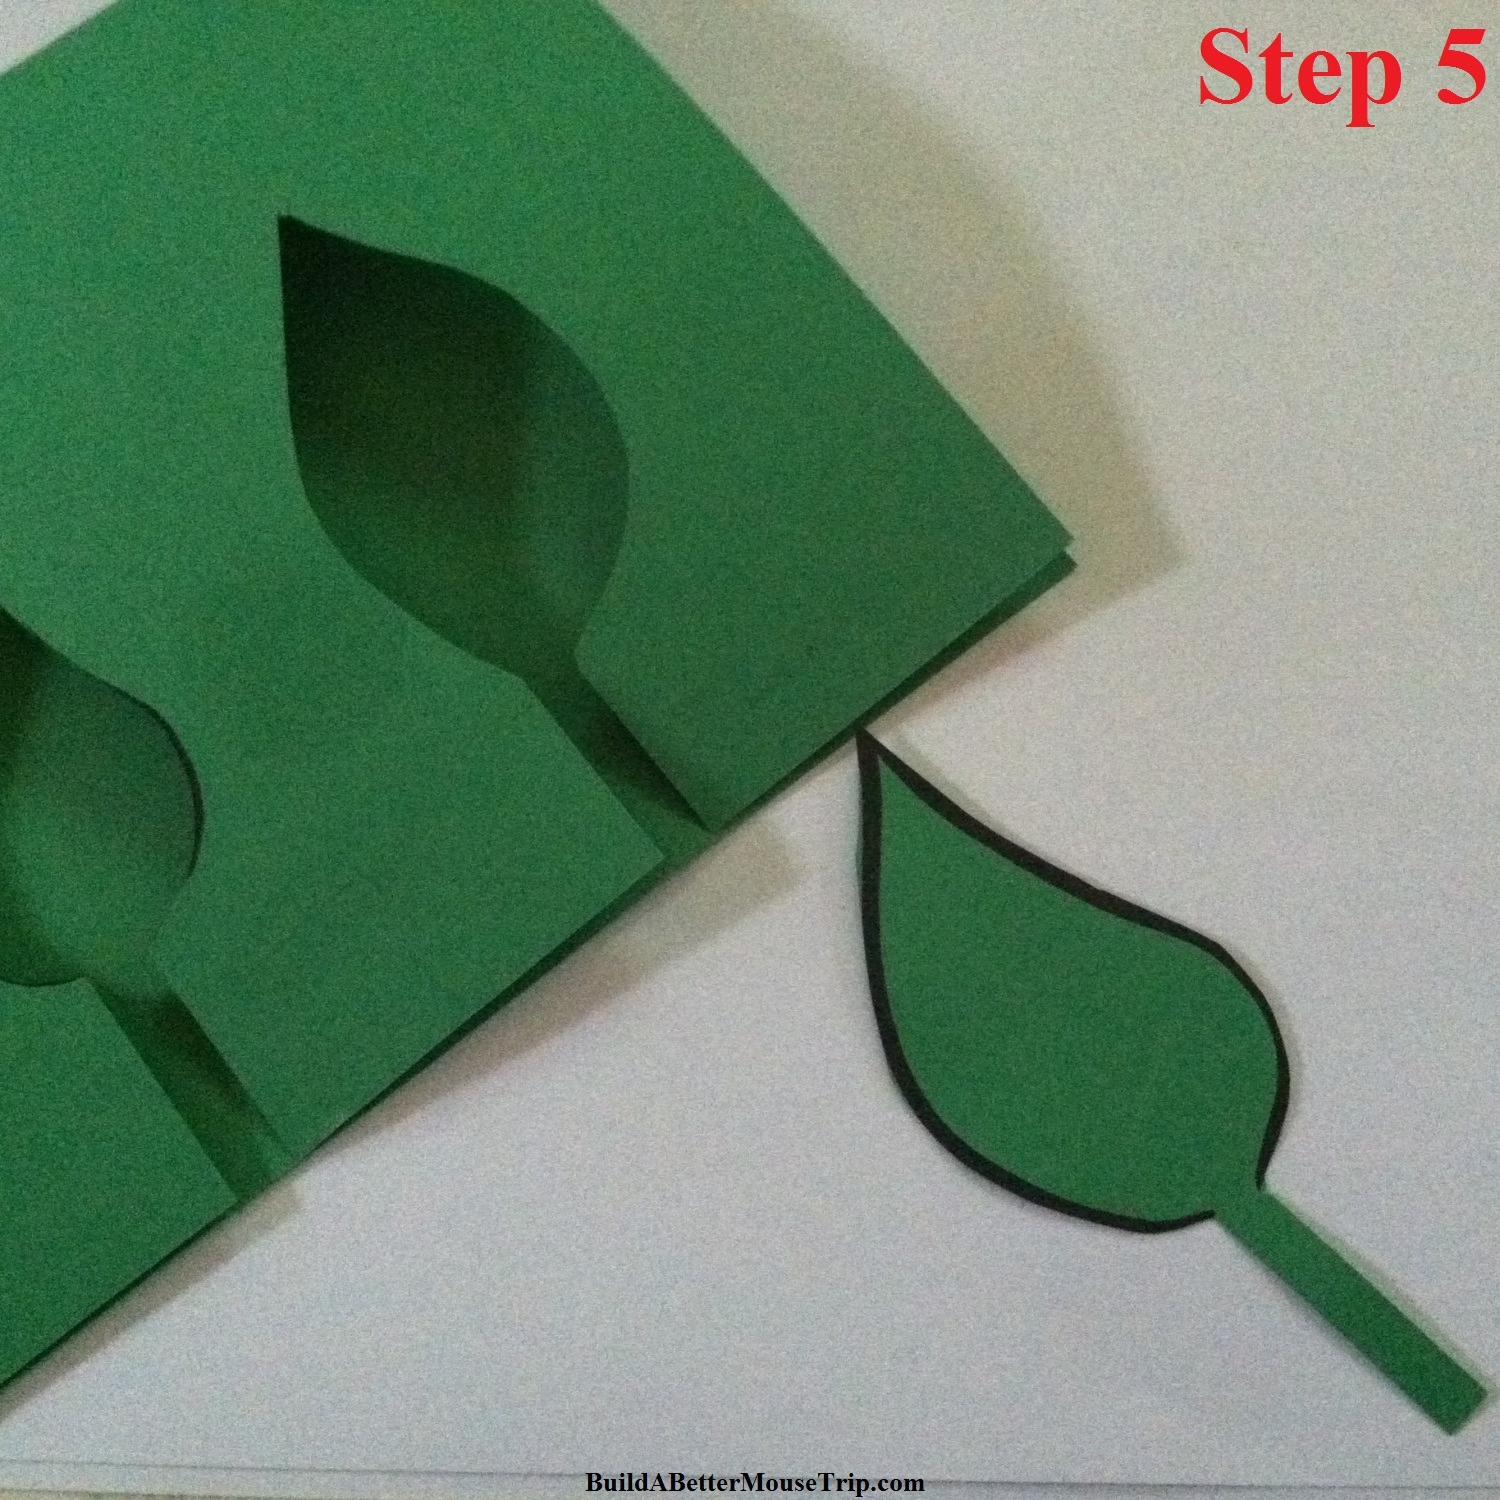 Step 5 - Cut a leaf out of green construction paper.